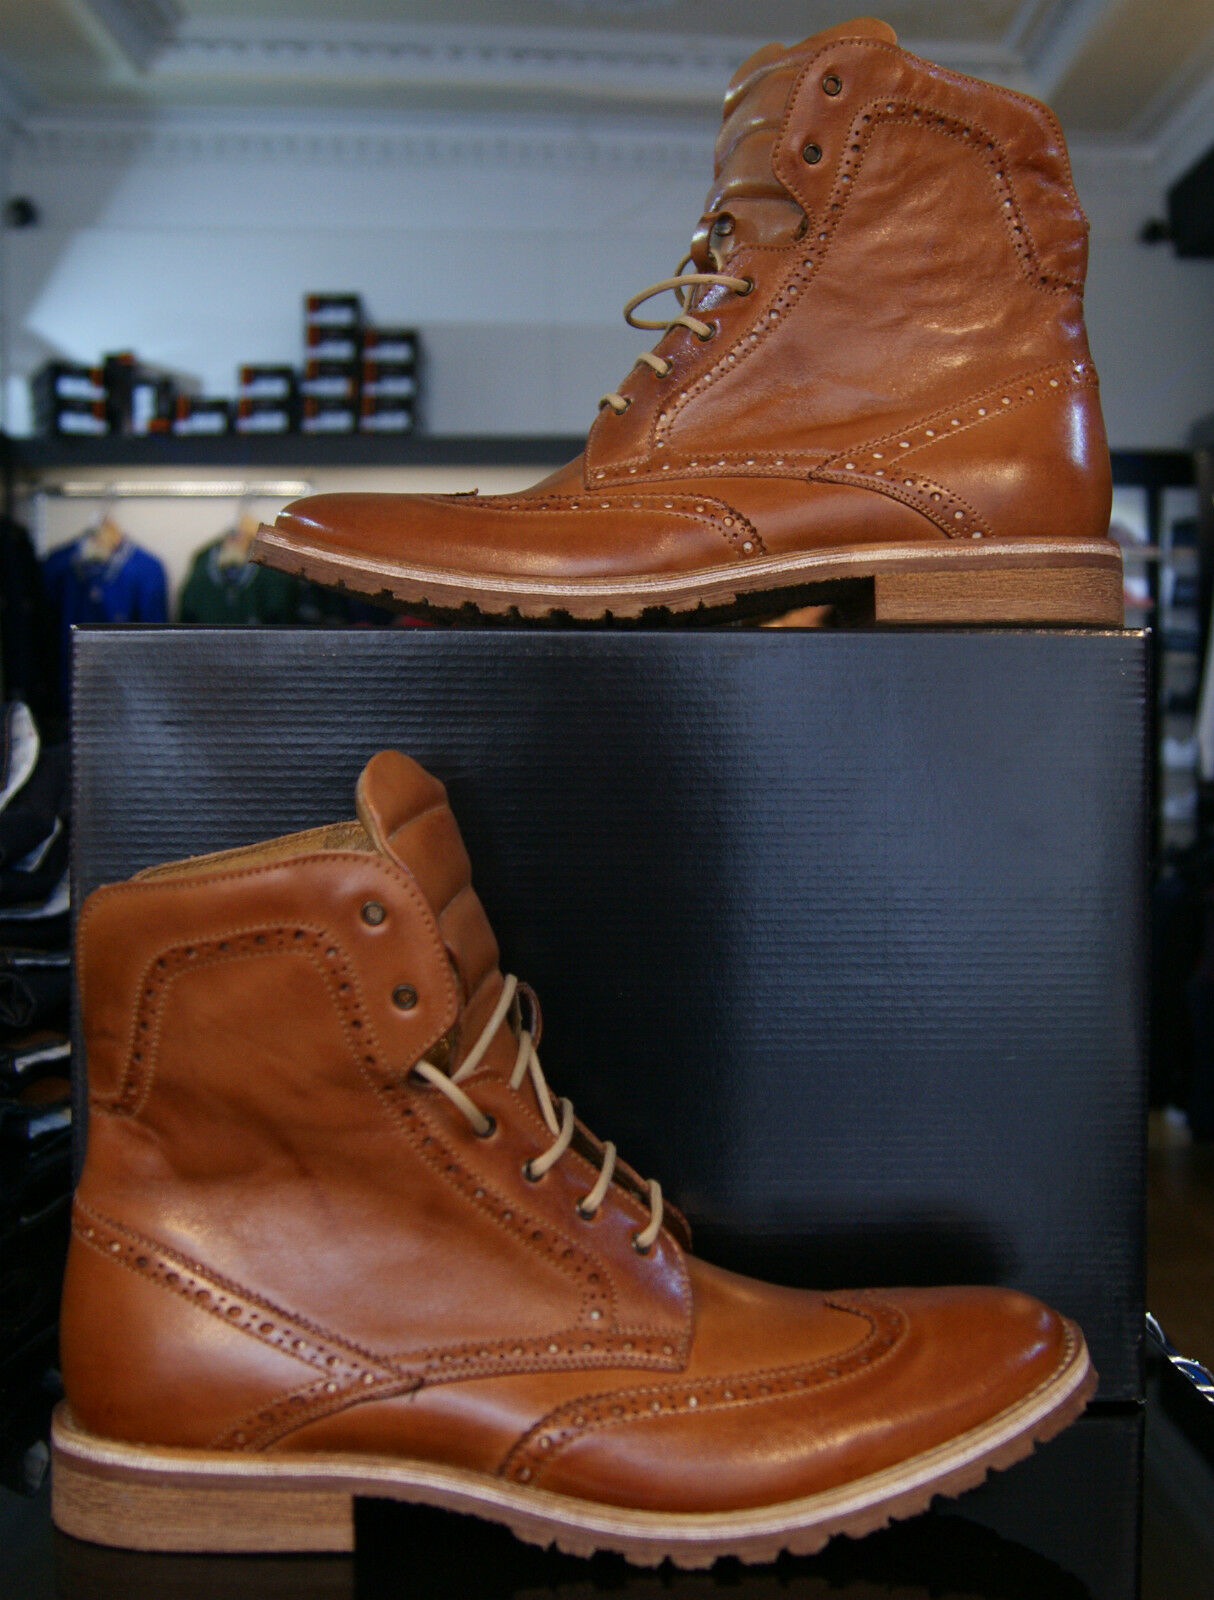 Mens Lacuzzo Designer Stylish Dress Casual Leather Designer Lacuzzo Winter Boots Lace Up In Brown 4e9be6